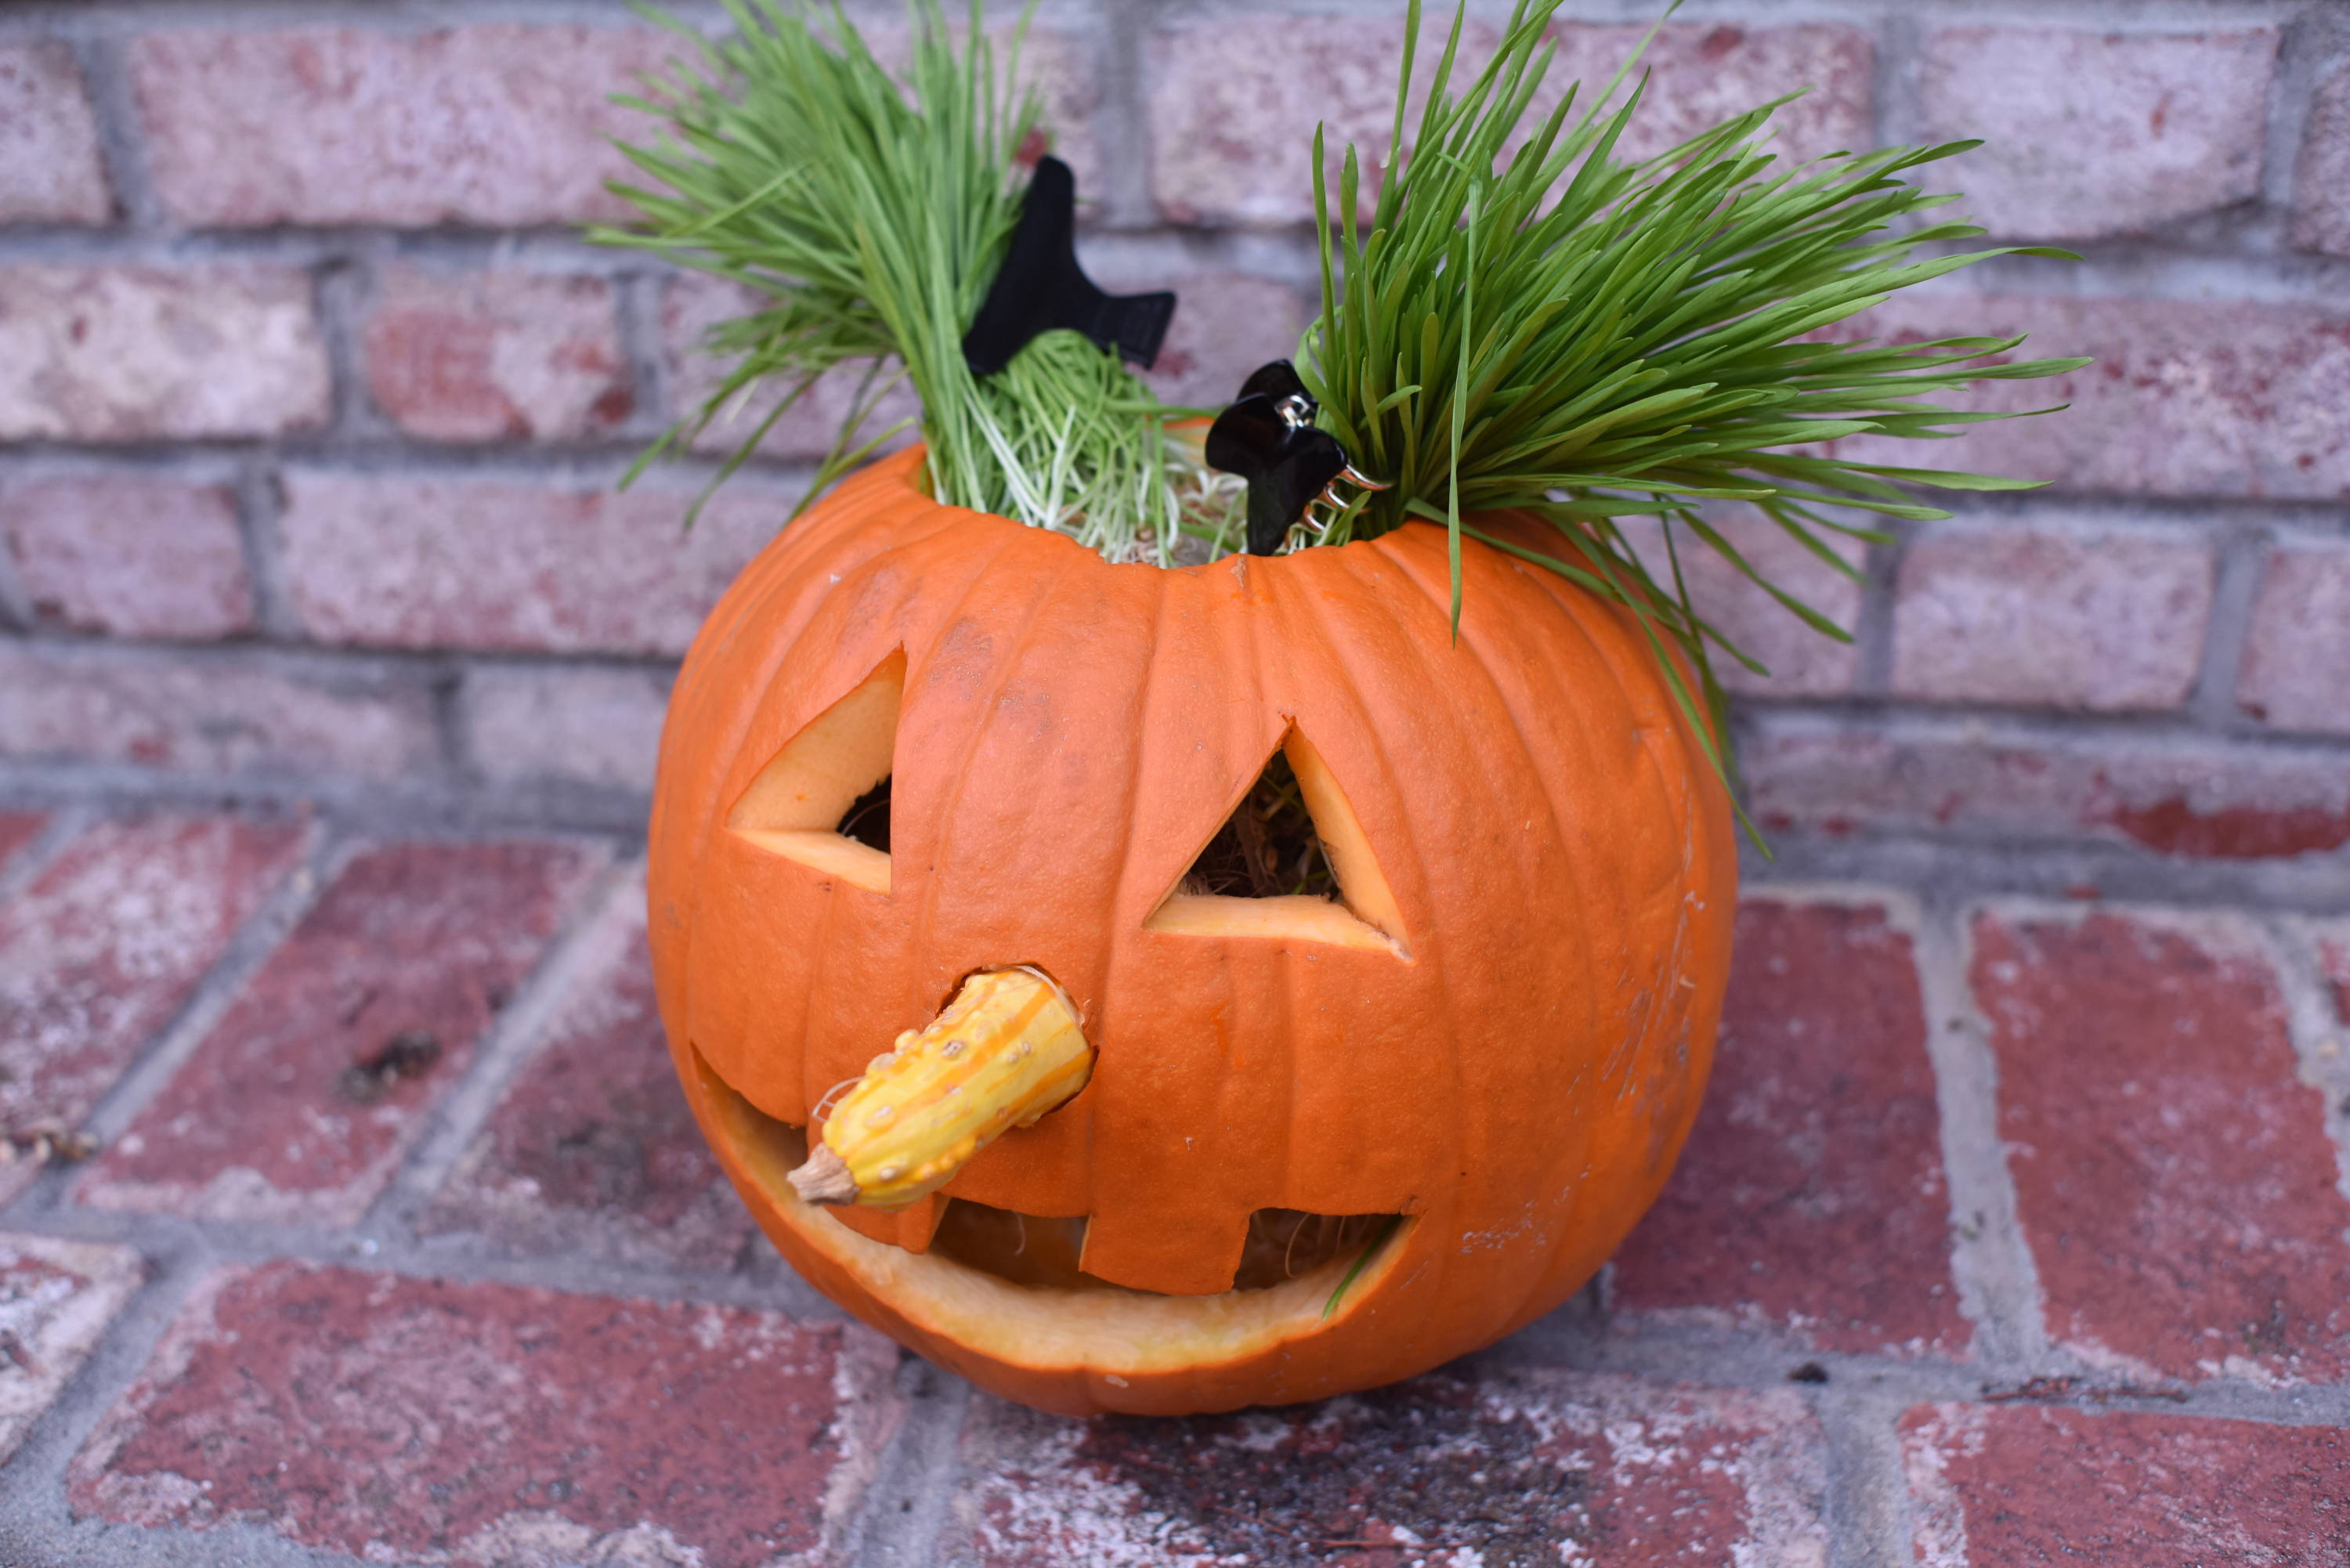 Carved pumpkin jack-o-lantern with homegrown wheatgrass hair.